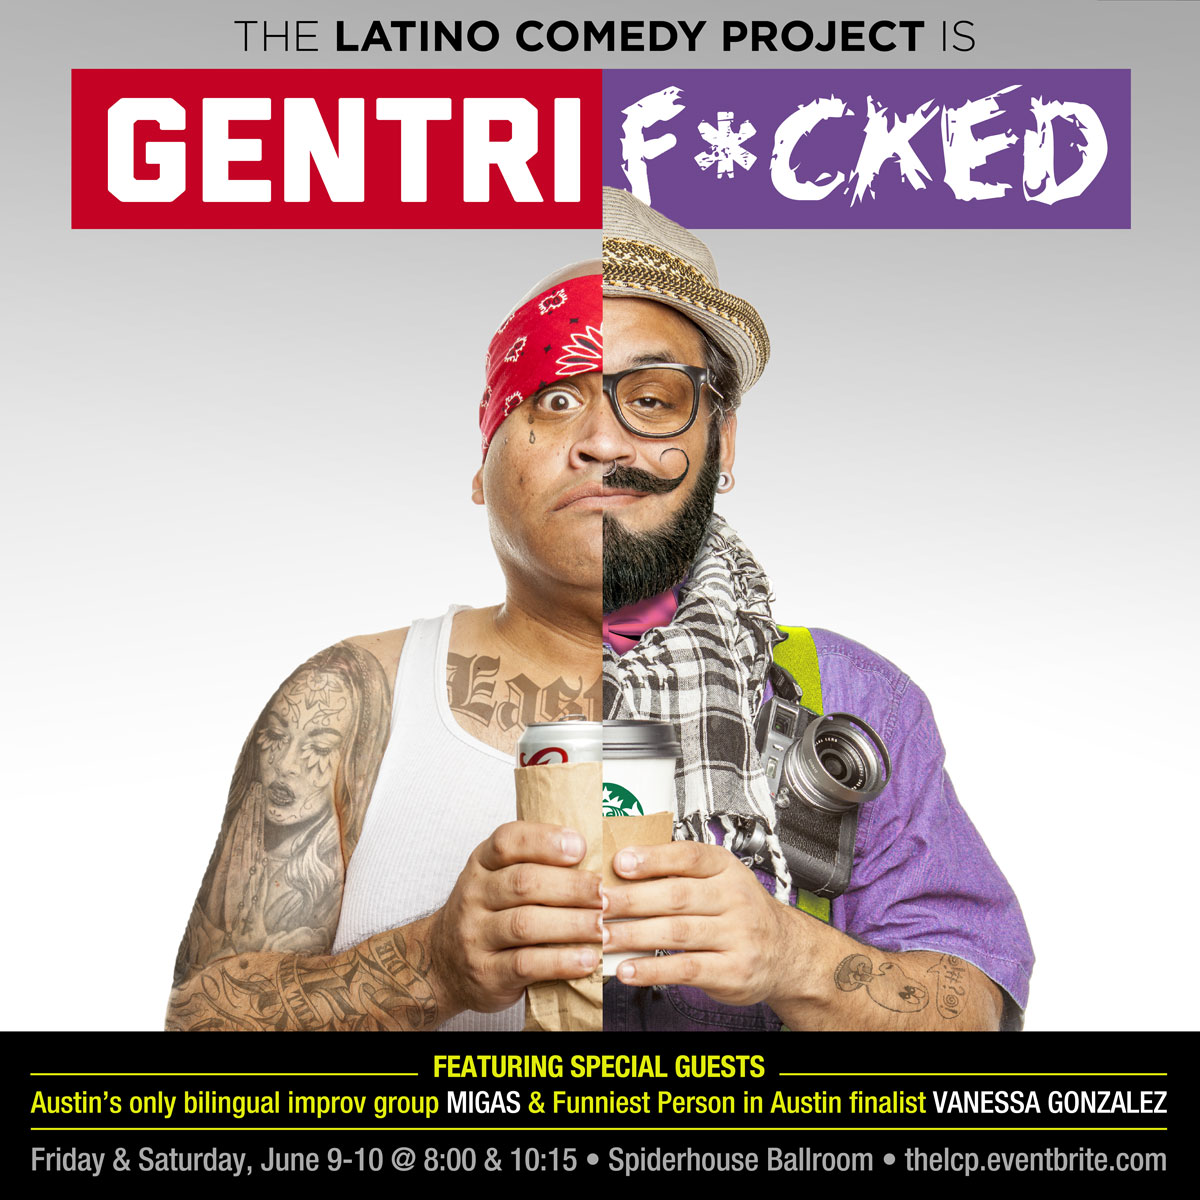 Gentrif*cked by Latino Comedy Project